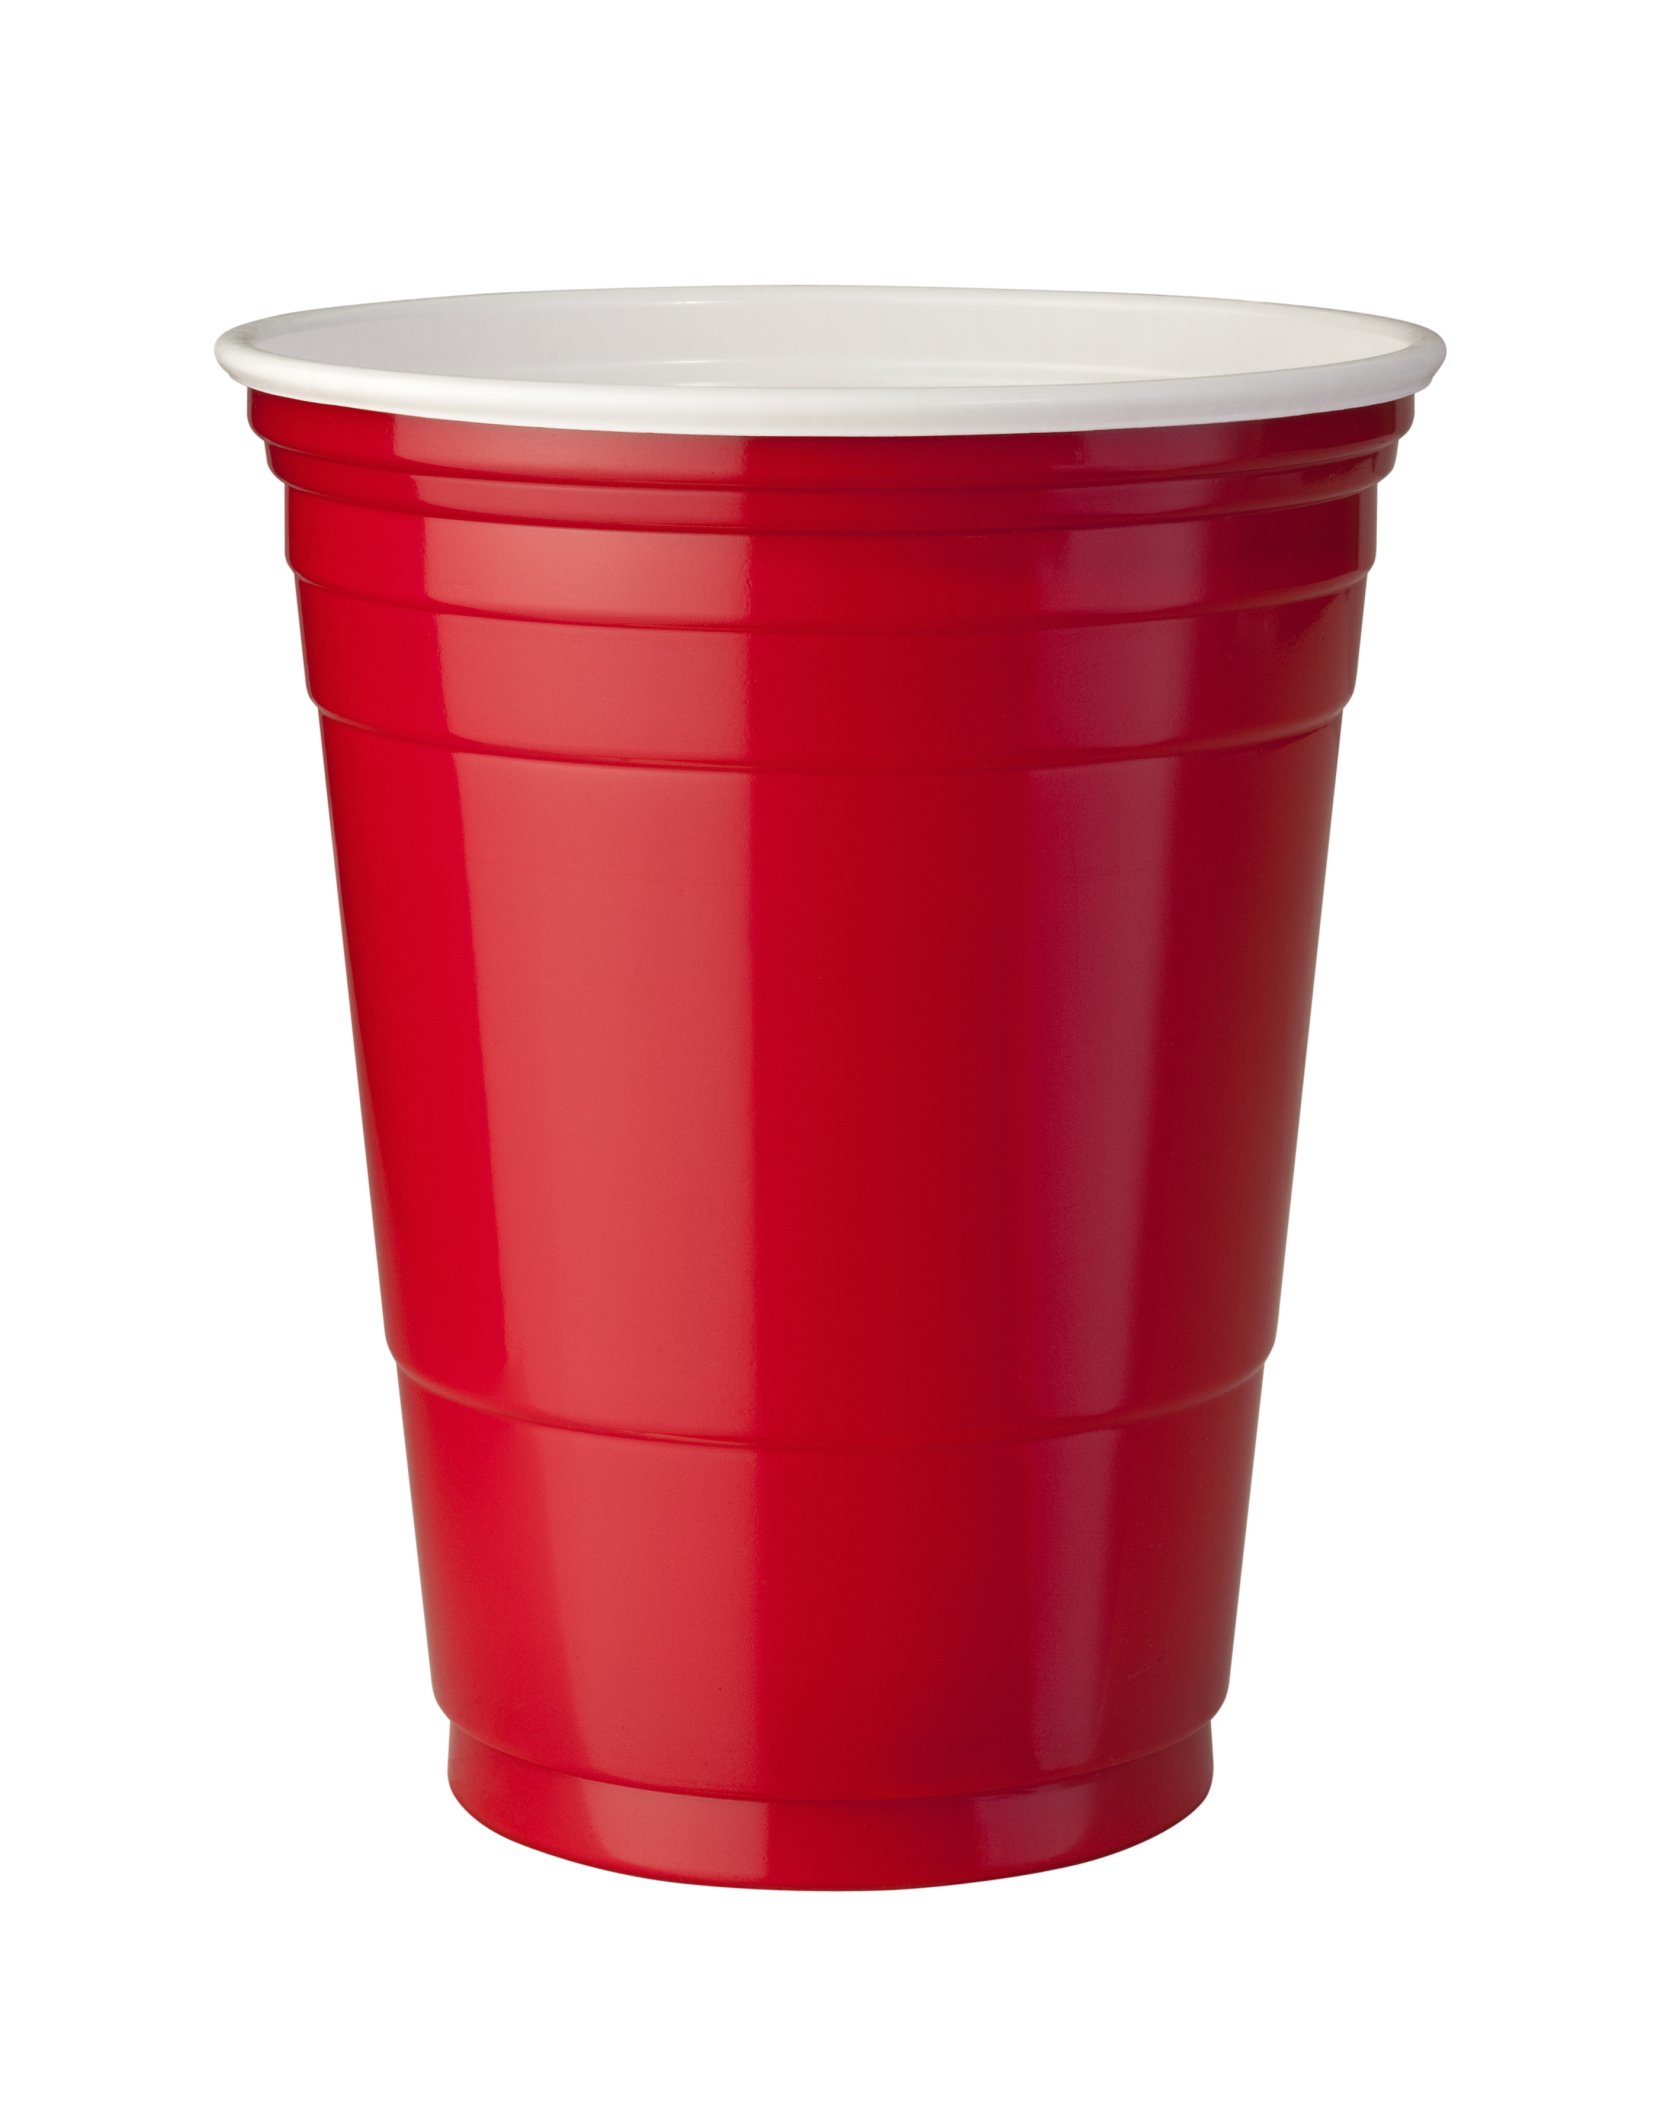 Red Plastic Cup Clipart Clipart Panda Fr-Red Plastic Cup Clipart Clipart Panda Free Clipart Images-7